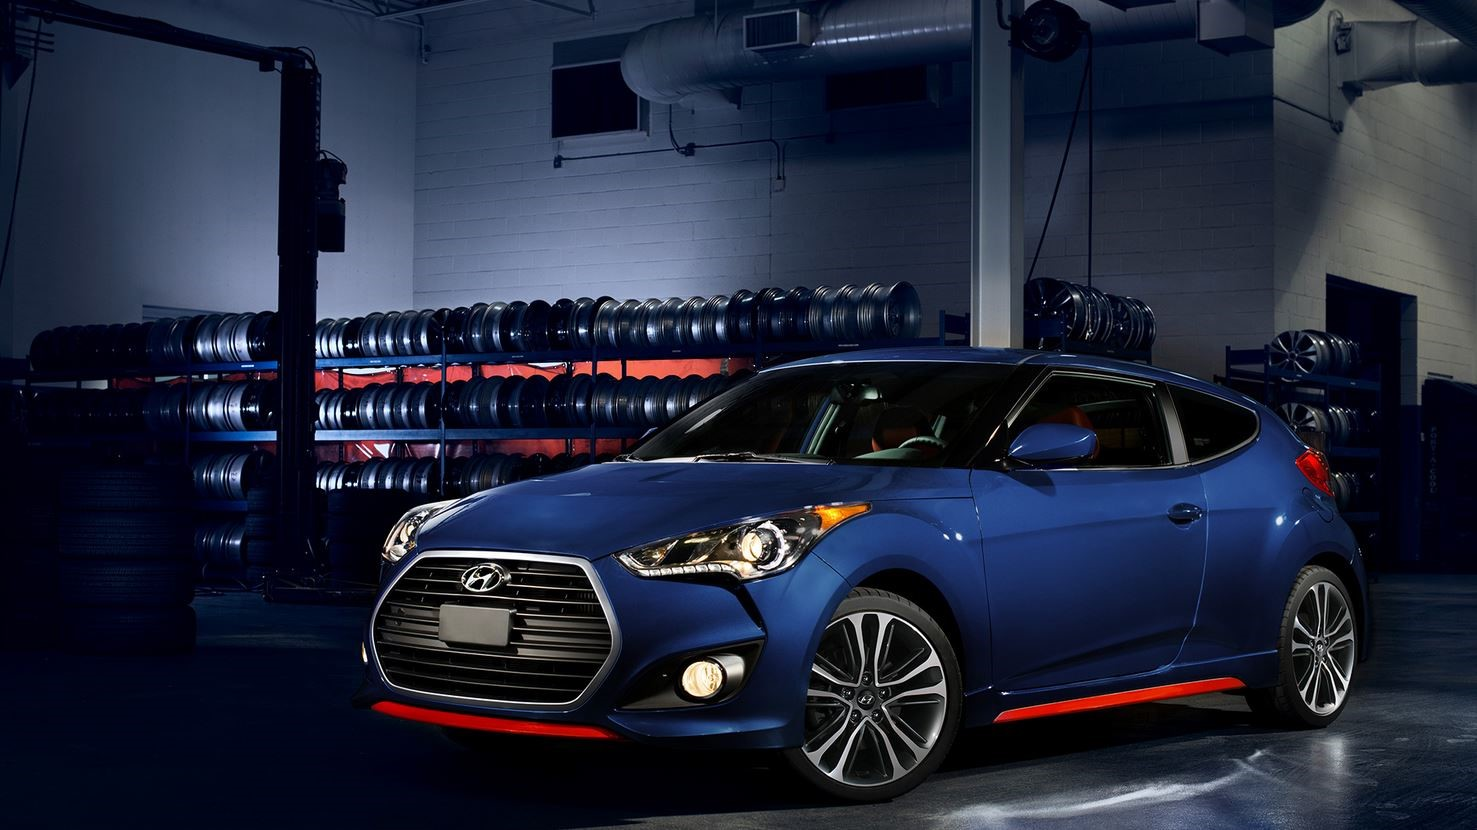 Sporty Styling On The 2017 Hyundai Veloster At Of Corona Two Door Car In Ca Is A Compact With Unique And Stylish Characteristic Features Three Doors Instead Being Or